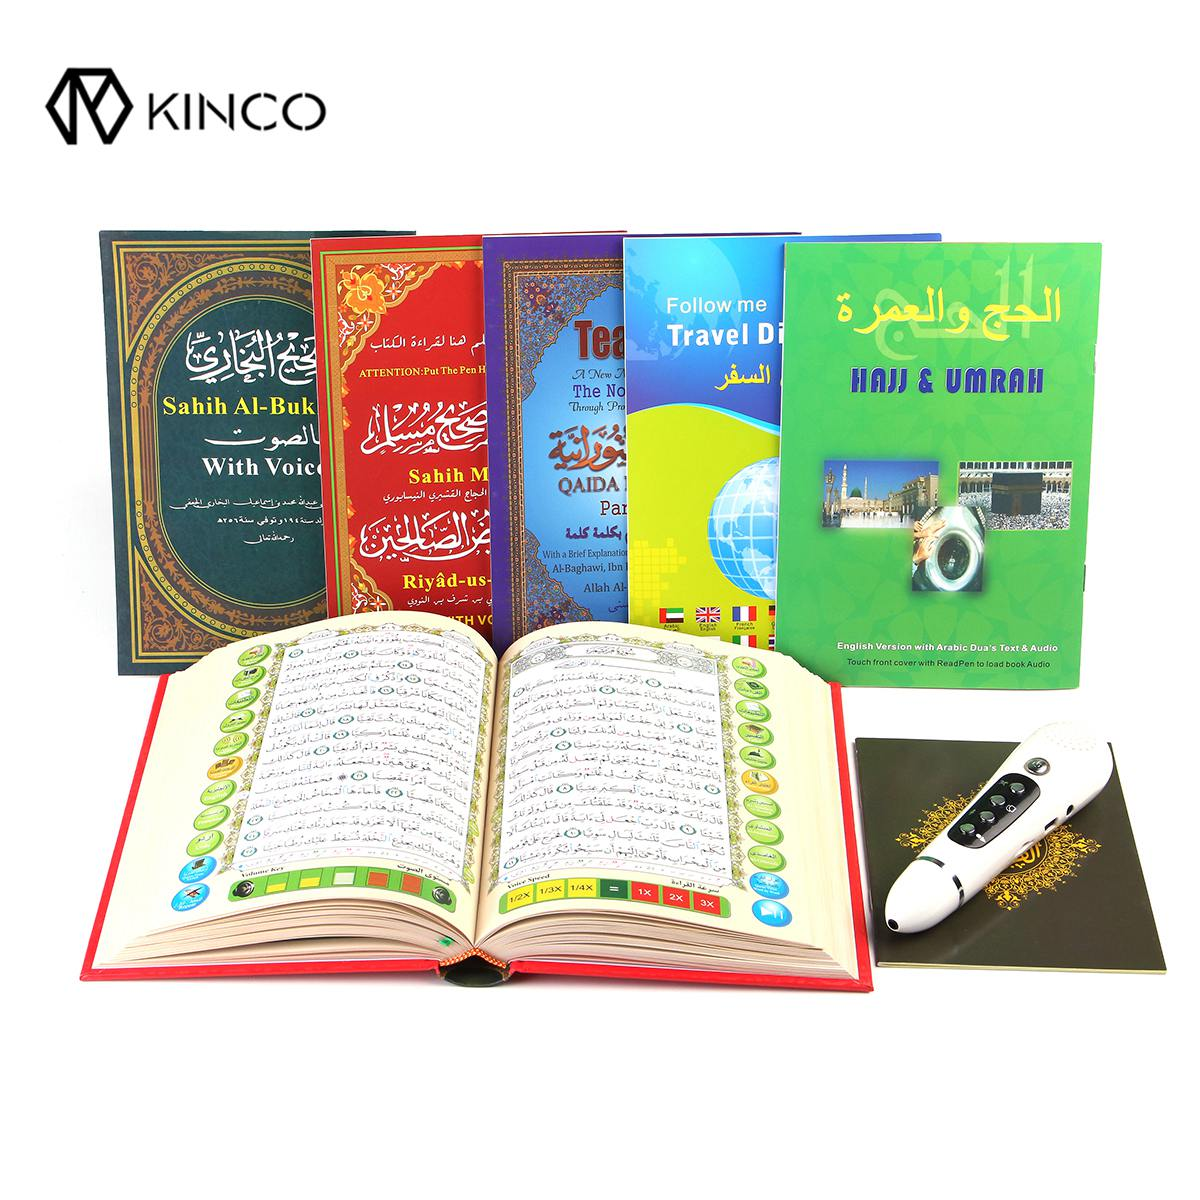 KINCO 4/8GB Digital Quran Reader Pens Talking Pen Recite FM MP3 TF Card With 6 Books Digital Quran Pen Reader 23 Languages digital quran lamp with azan clock colorful led light quran player fm radio quran free download english italian translator